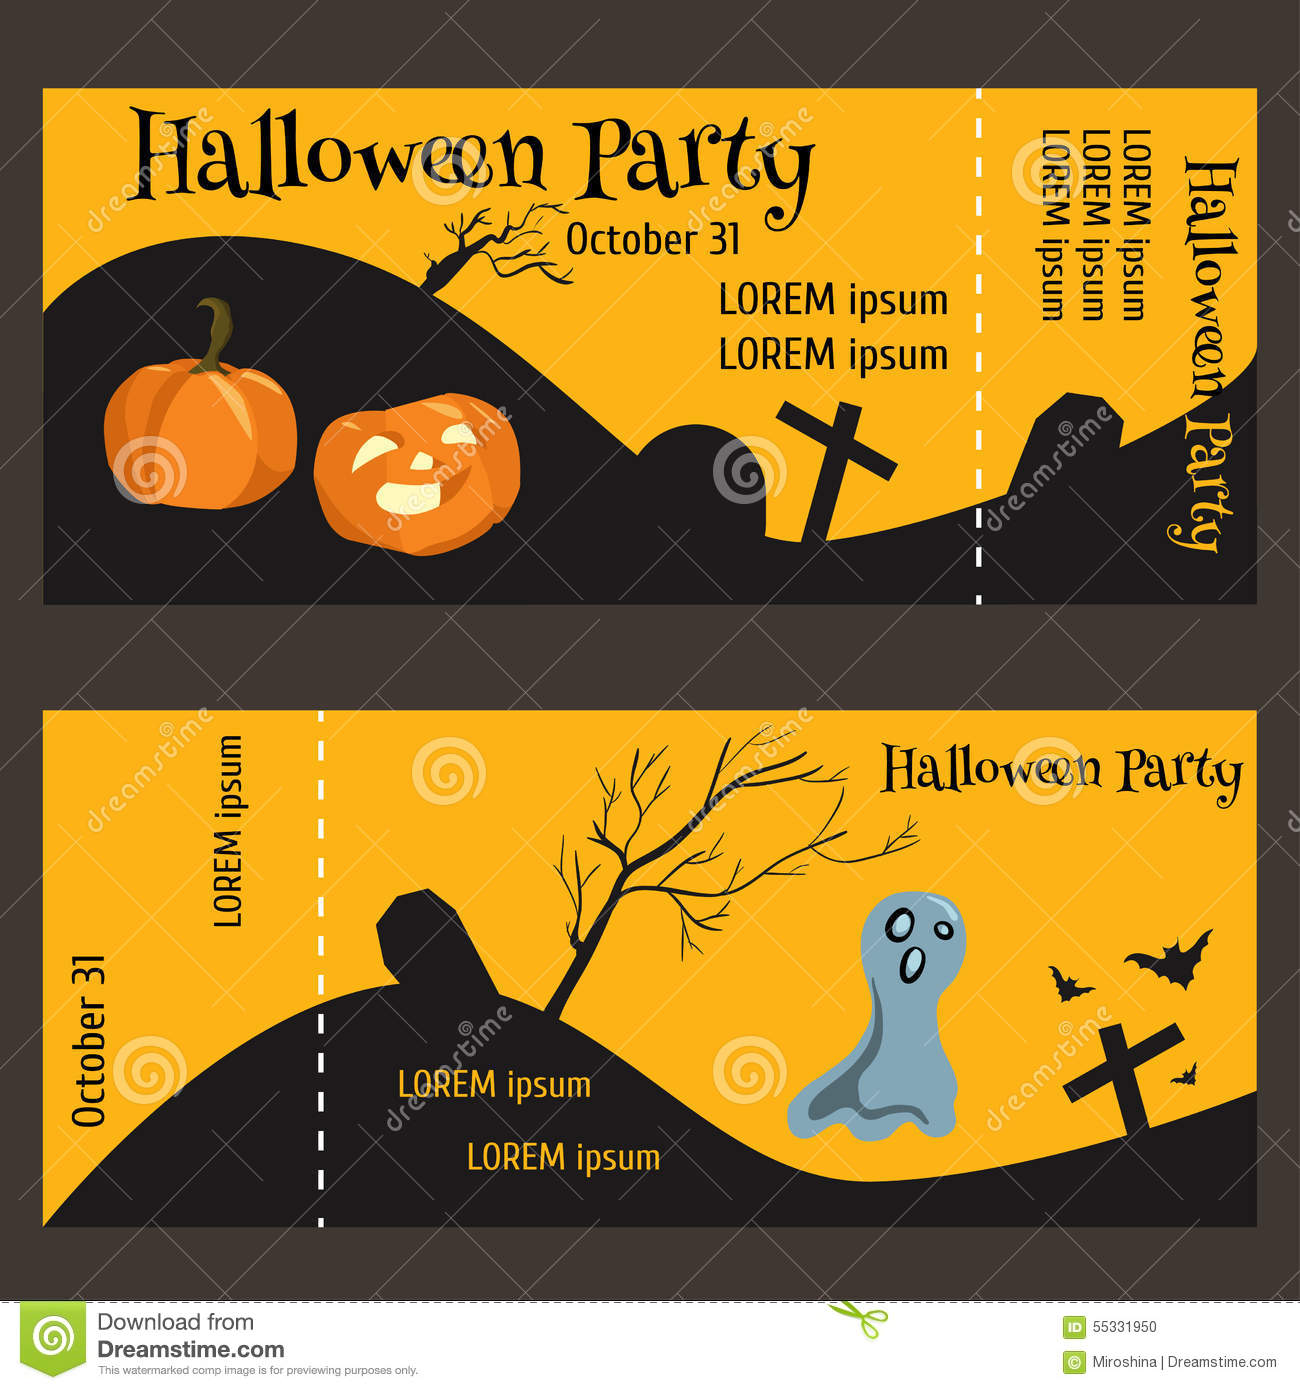 ticket for halloween party  two sided  with a tear off portion stock illustration image 55331950 cemetery clipart png cemetery monument clipart